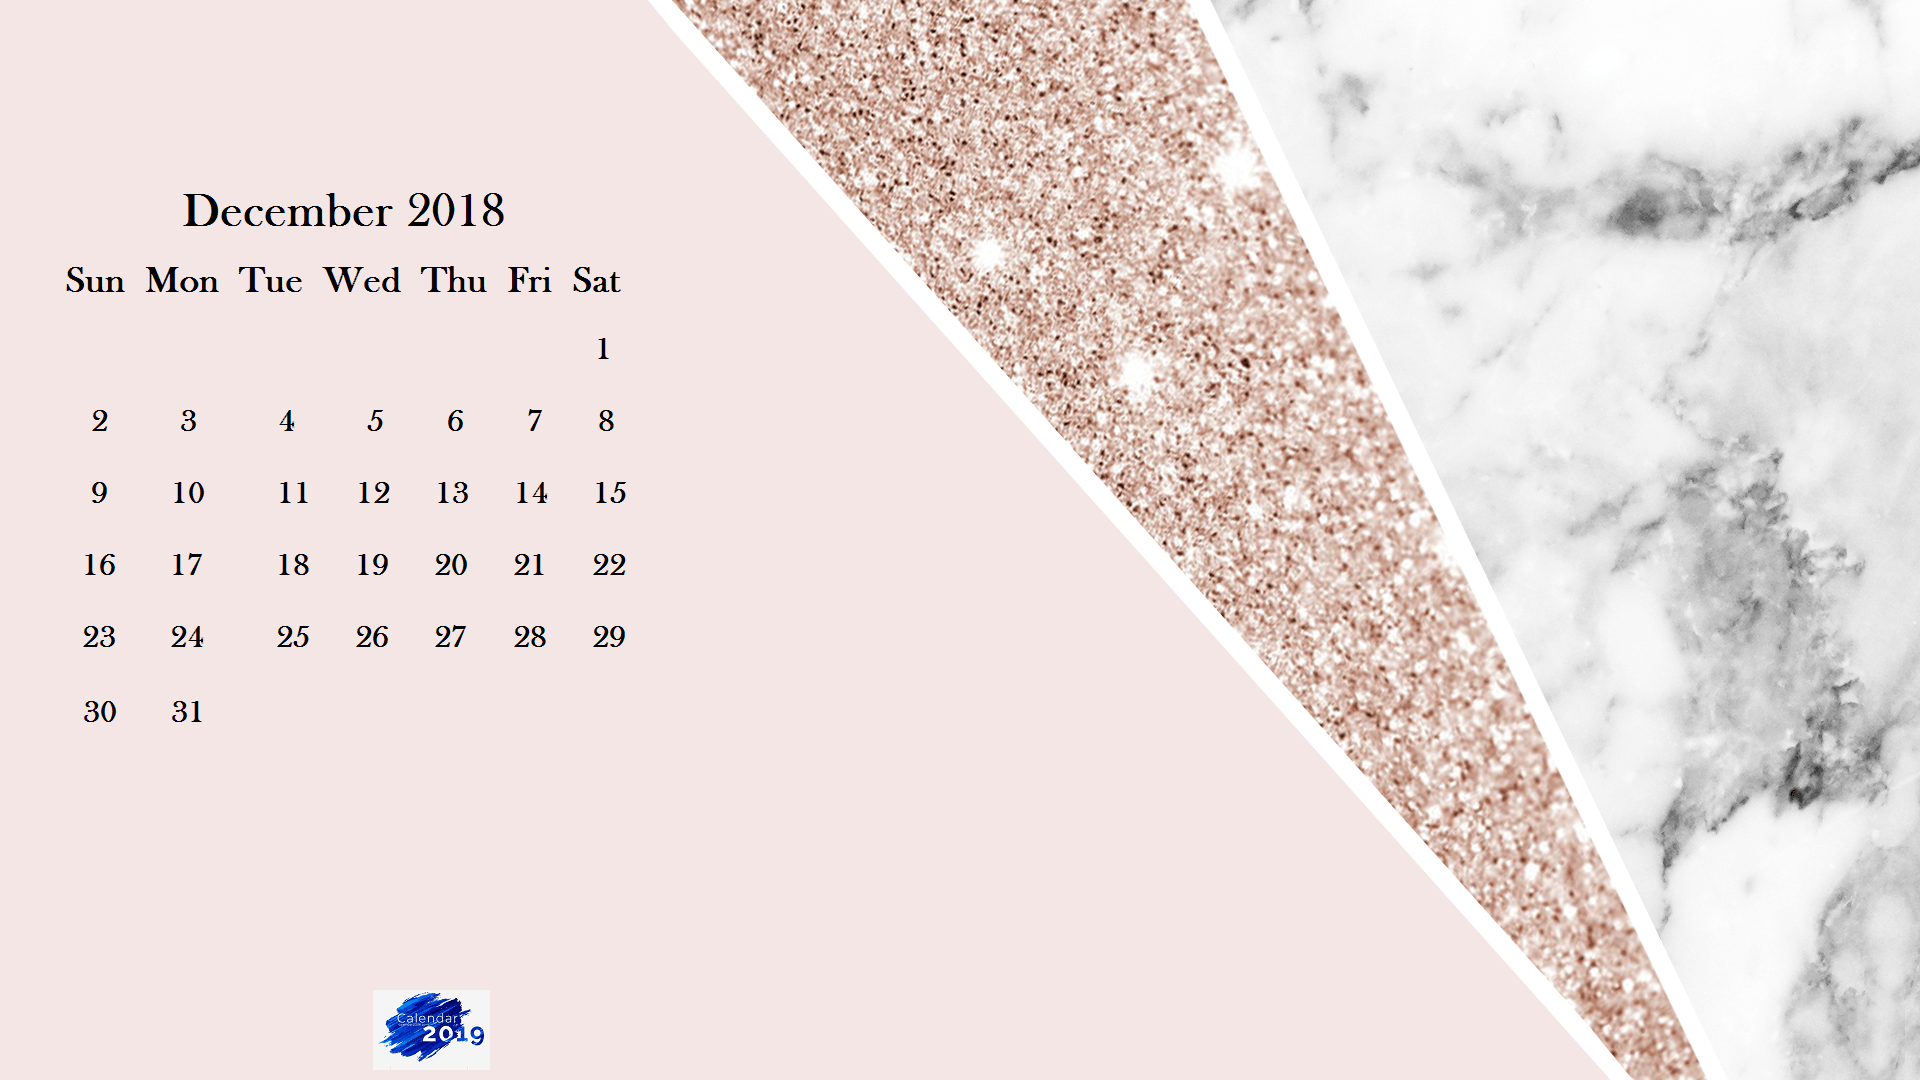 December 2019 Calendar Wallpaper Desktop December 2018 Calendar Wallpapers   Wallpaper Cave